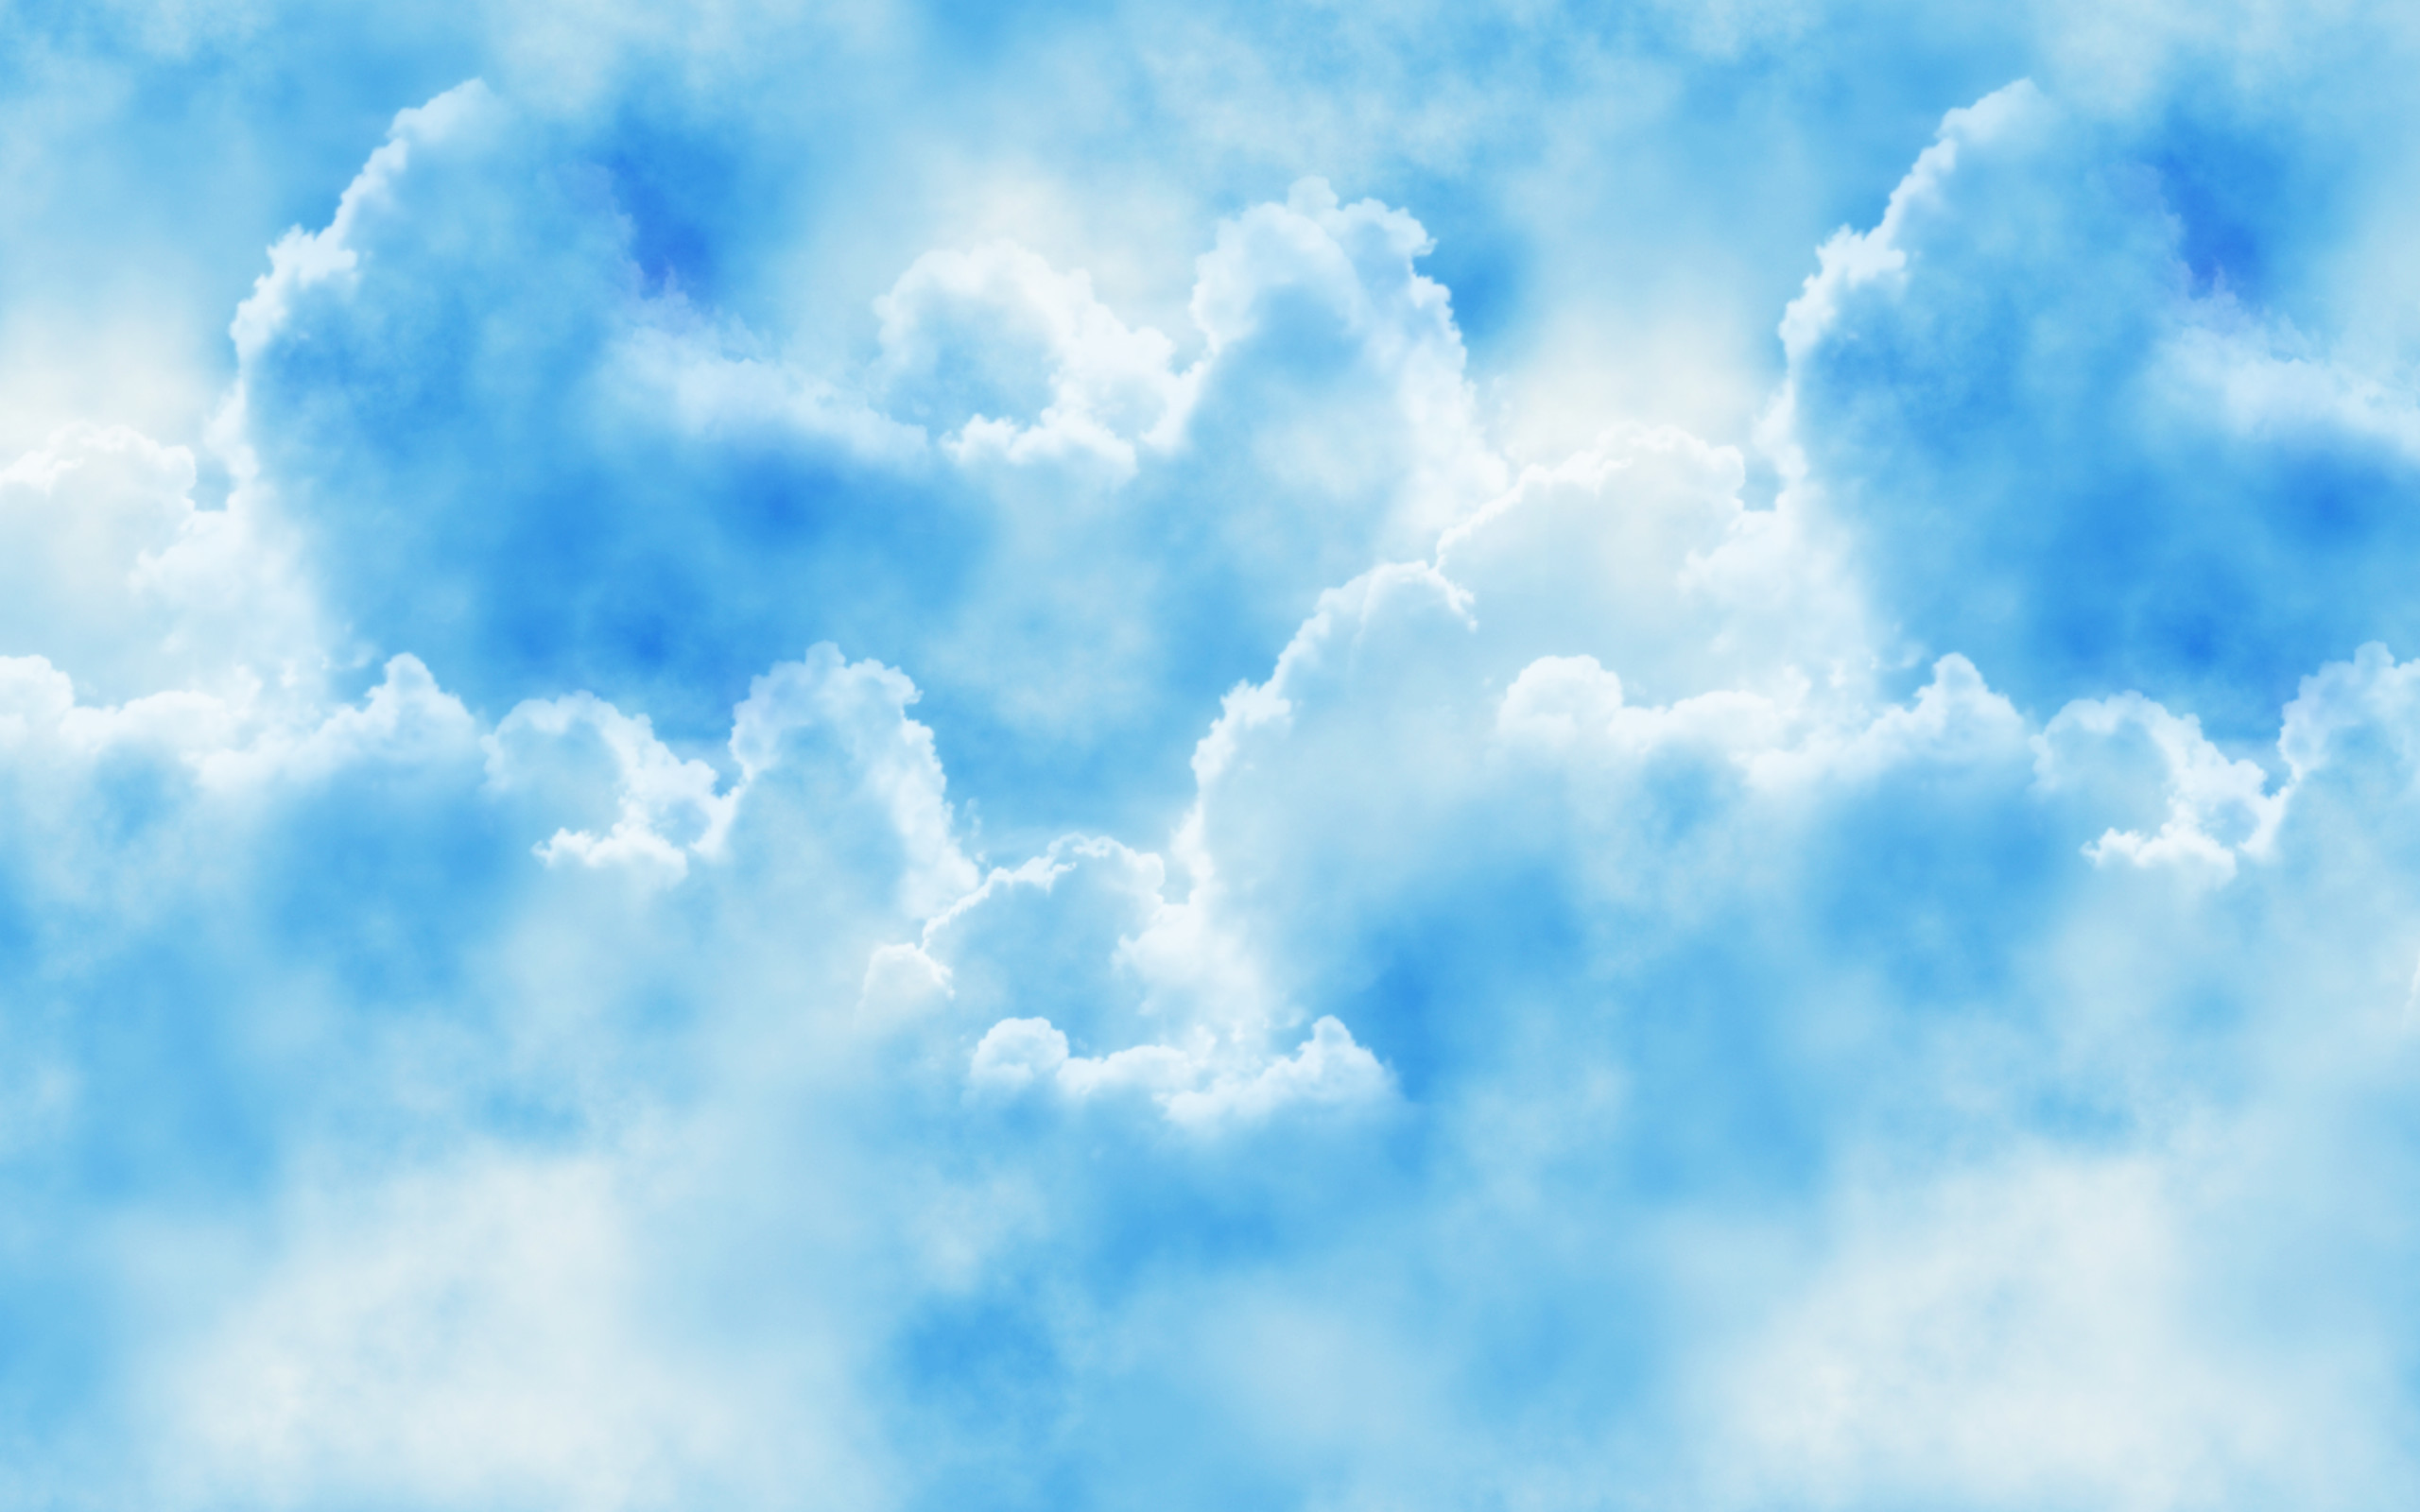 Sky Cloud Wallpapers Hd: Blue Sky With Clouds Wallpaper (56+ Images